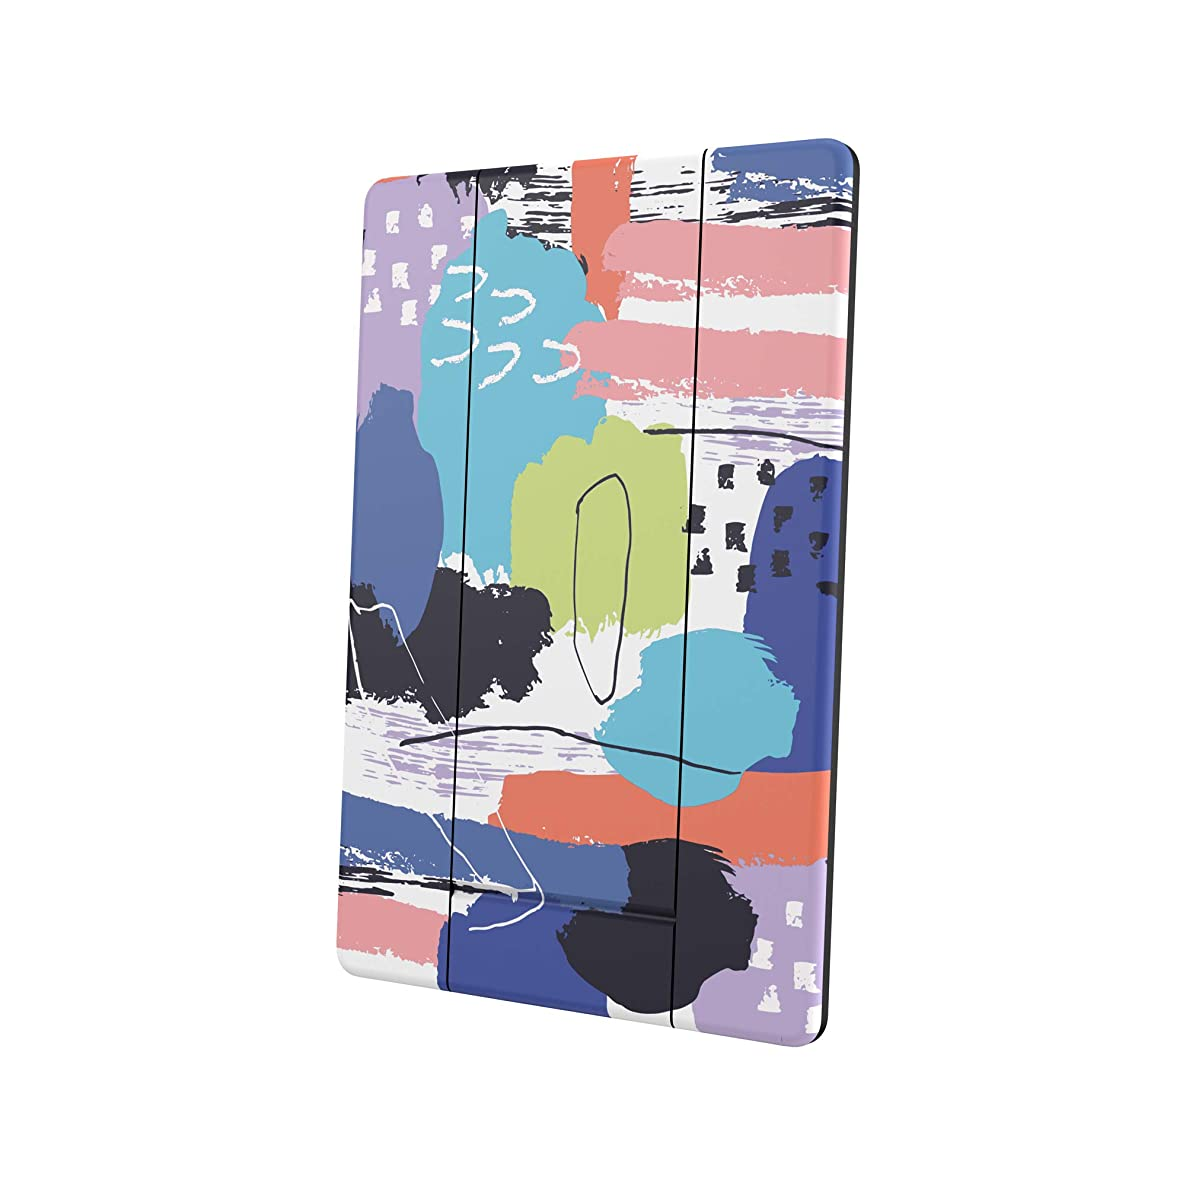 Speck Products GrabTab Cell Phone Holder and Stand, Works With Most Cell Phones, Cases, PaintSplatter Blue